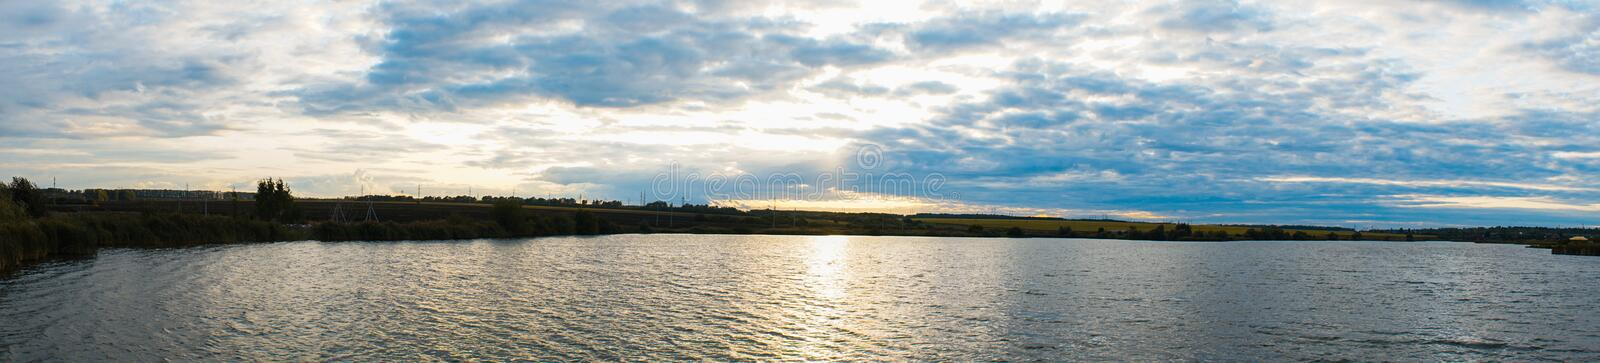 Panorama of sunset blue sky with cirrus clouds royalty free stock photos